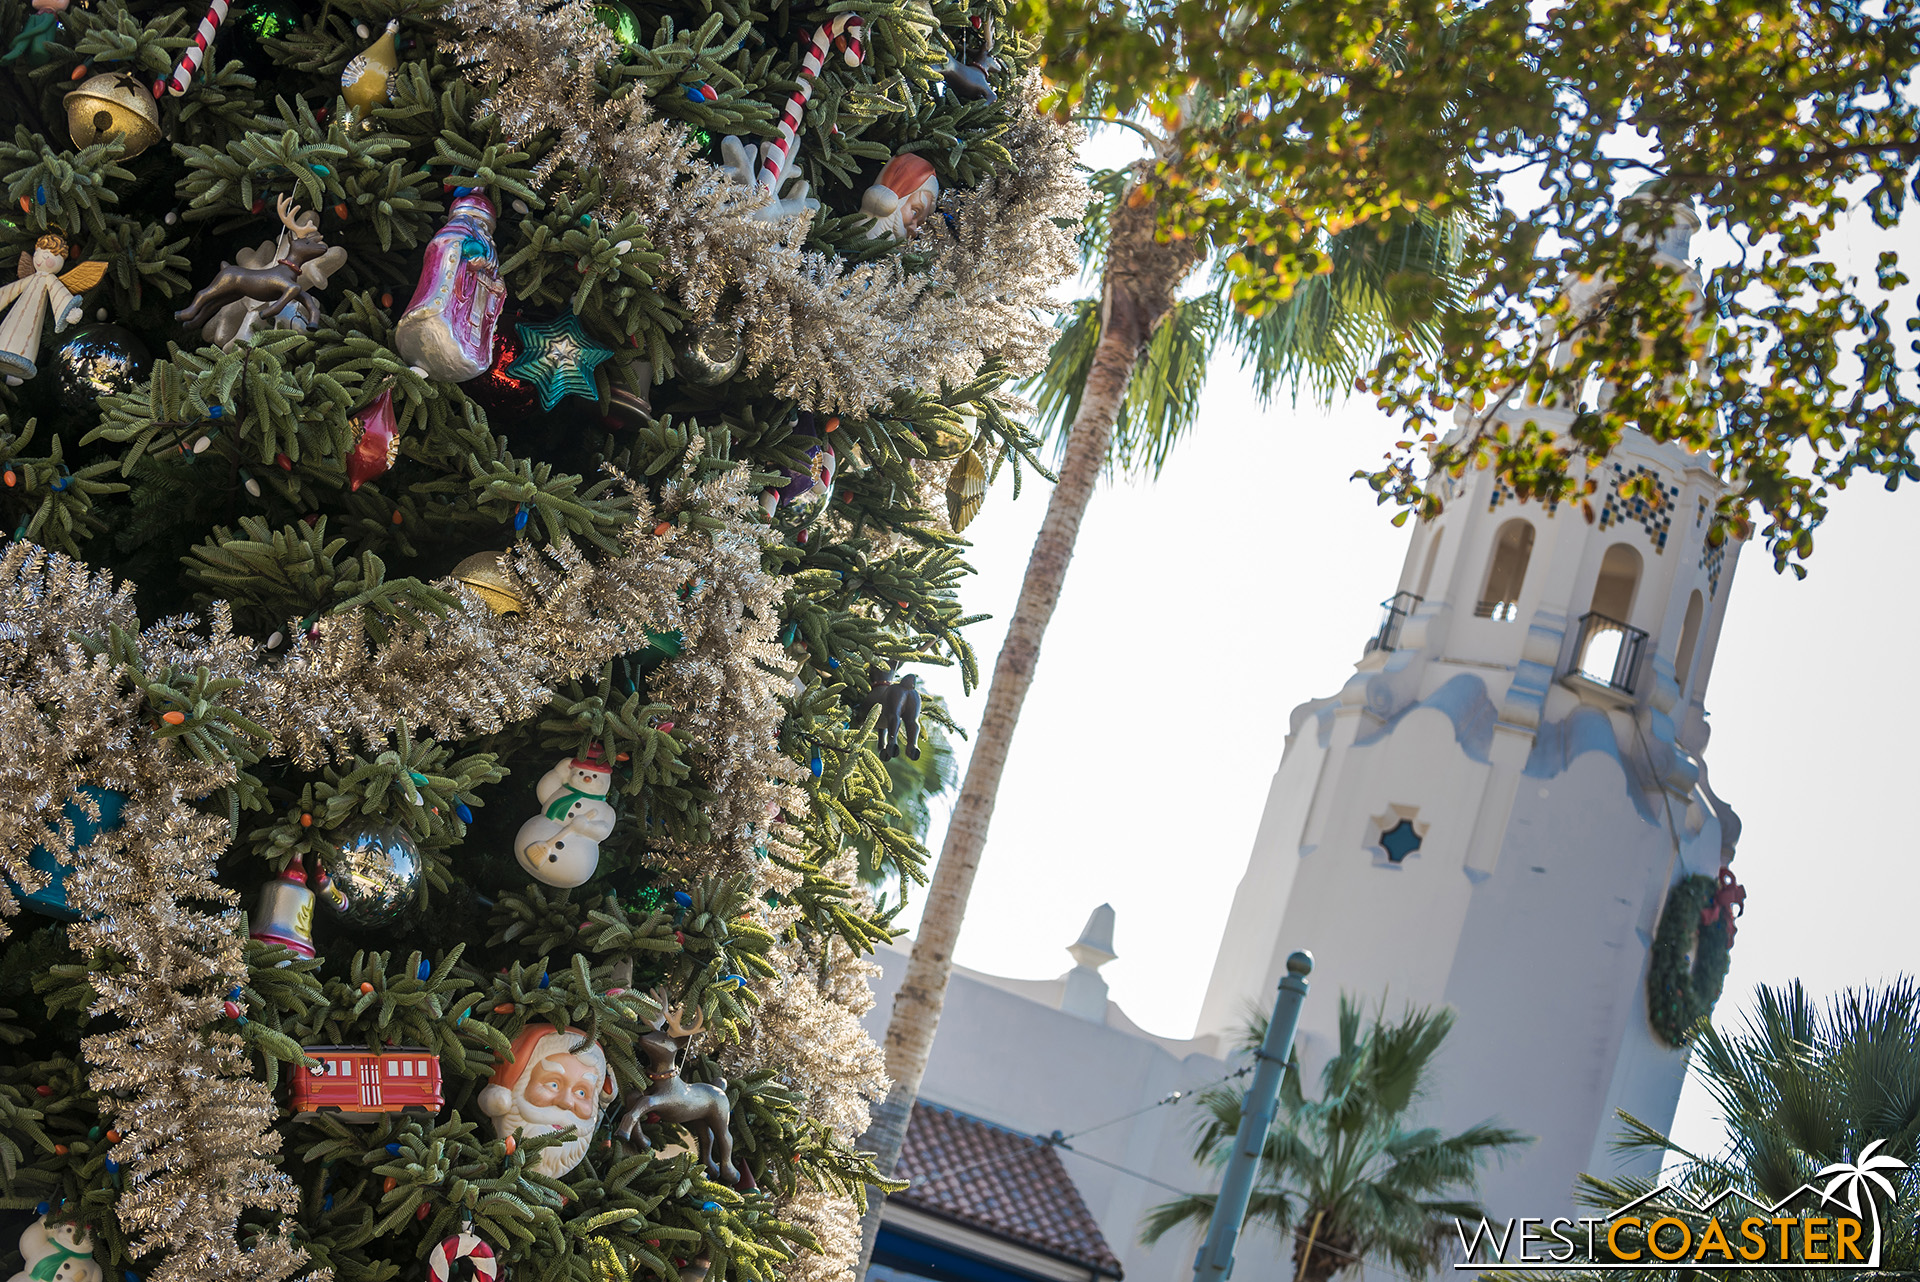 The towering Christmas tree is once again visible throughout Buena Vista Street.